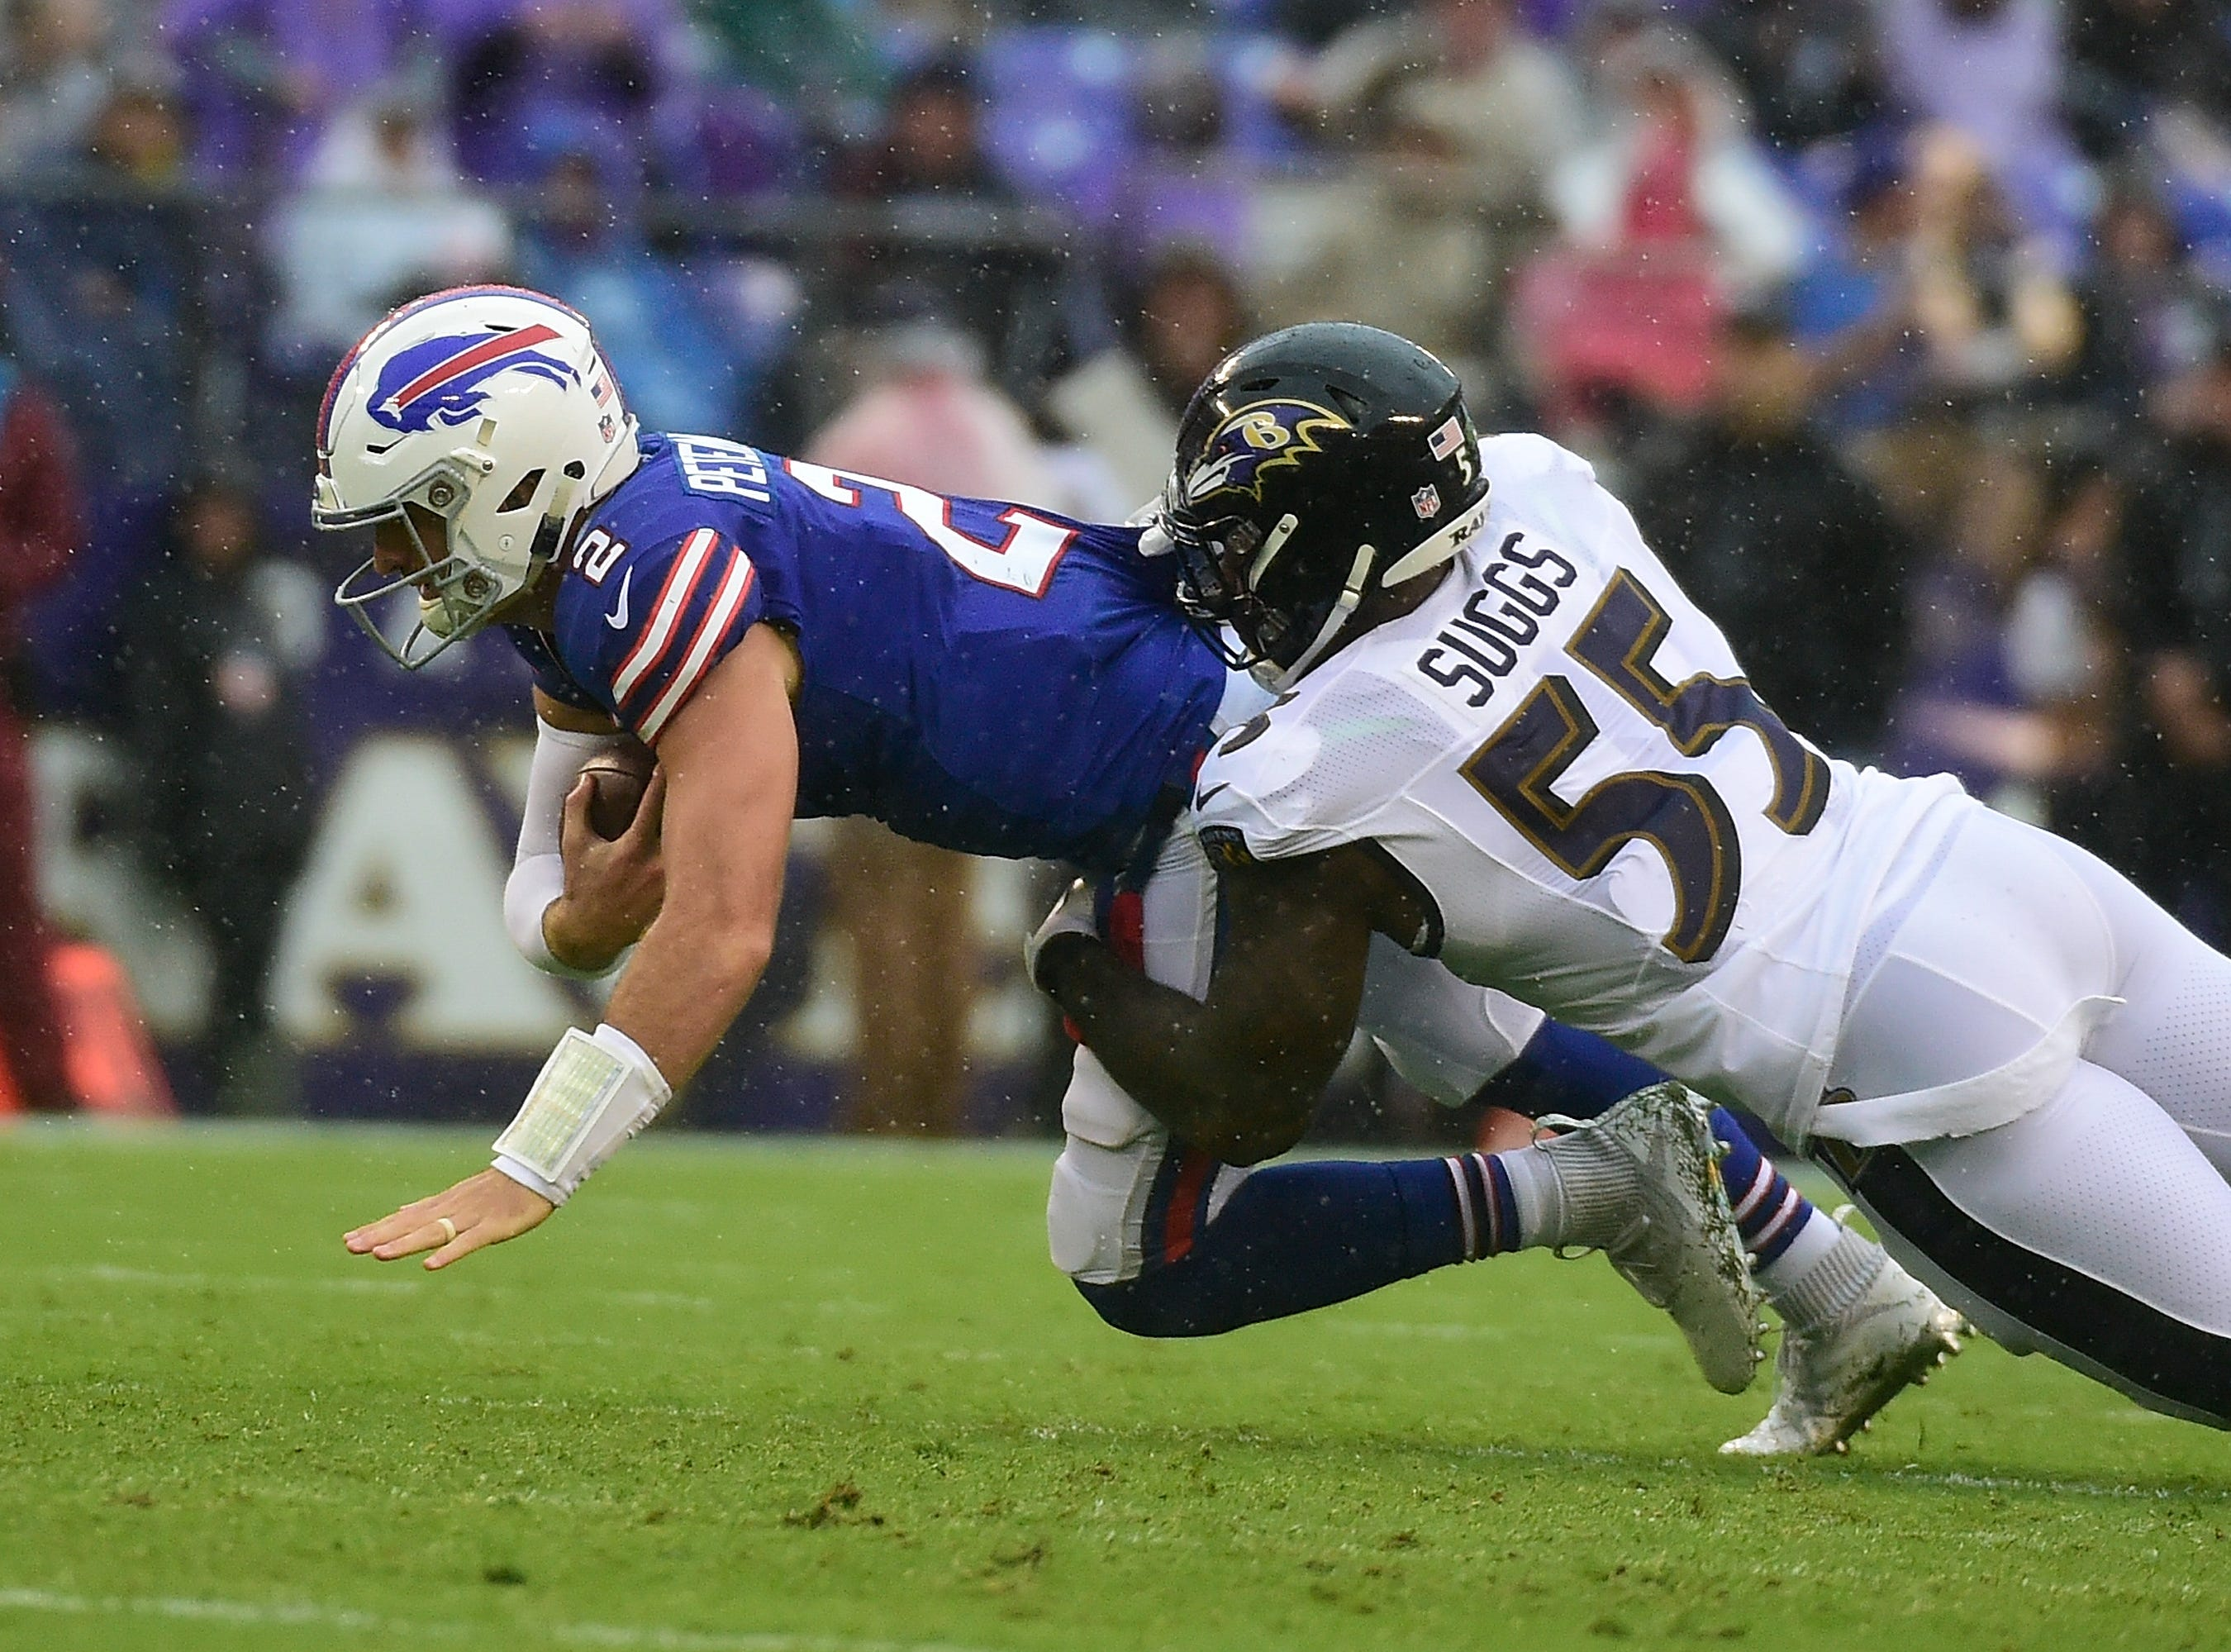 Baltimore Ravens linebacker Terrell Suggs (55) sacks Buffalo Bills quarterback Nathan Peterman (2) during the second quarter at M&T Bank Stadium. Mandatory Credit: Tommy Gilligan-USA TODAY Sports